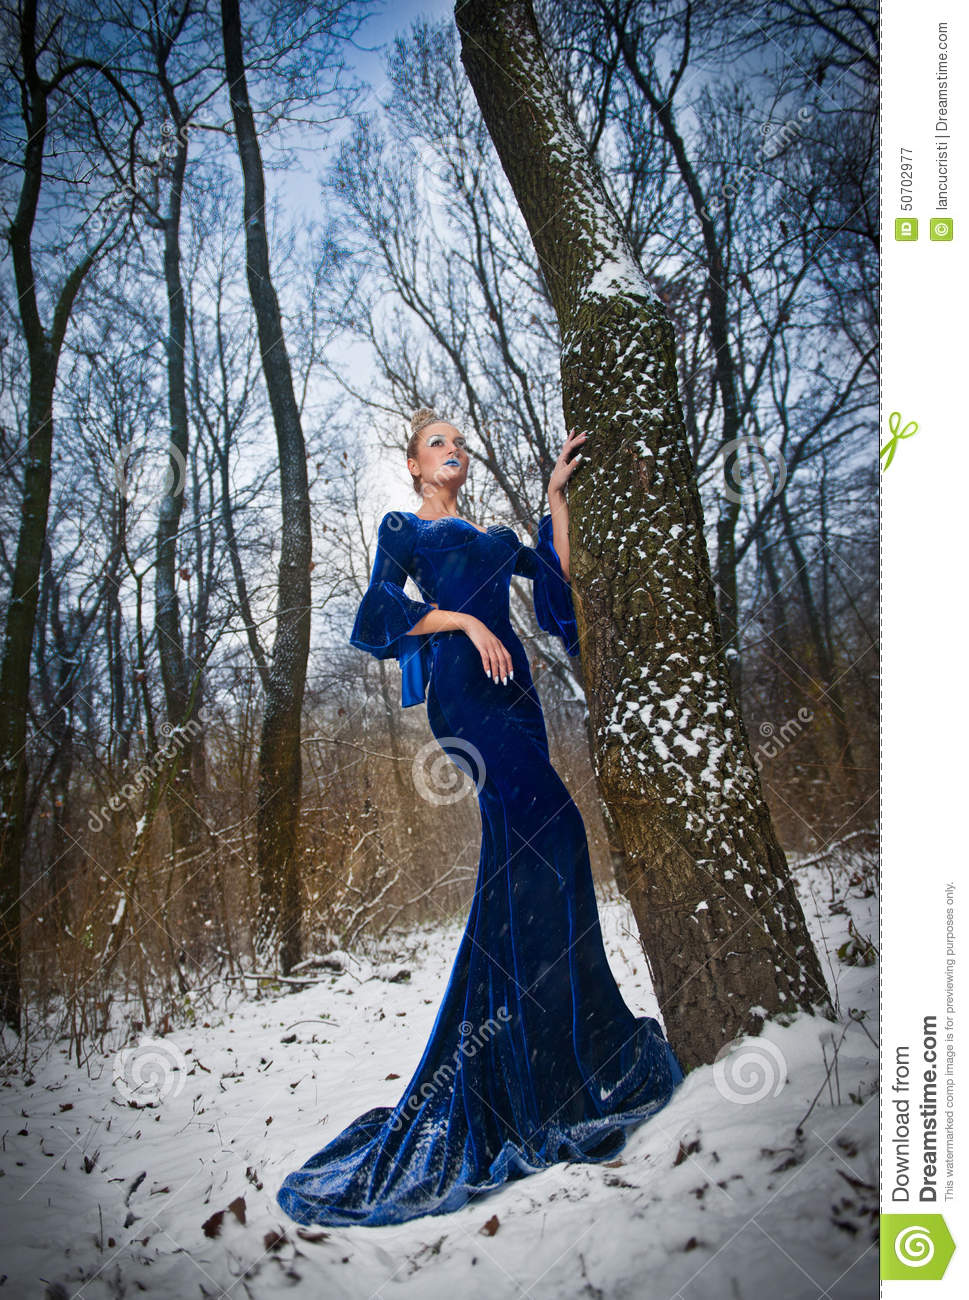 Lovely Young Lady In Elegant Blue Dress Posing In Winter